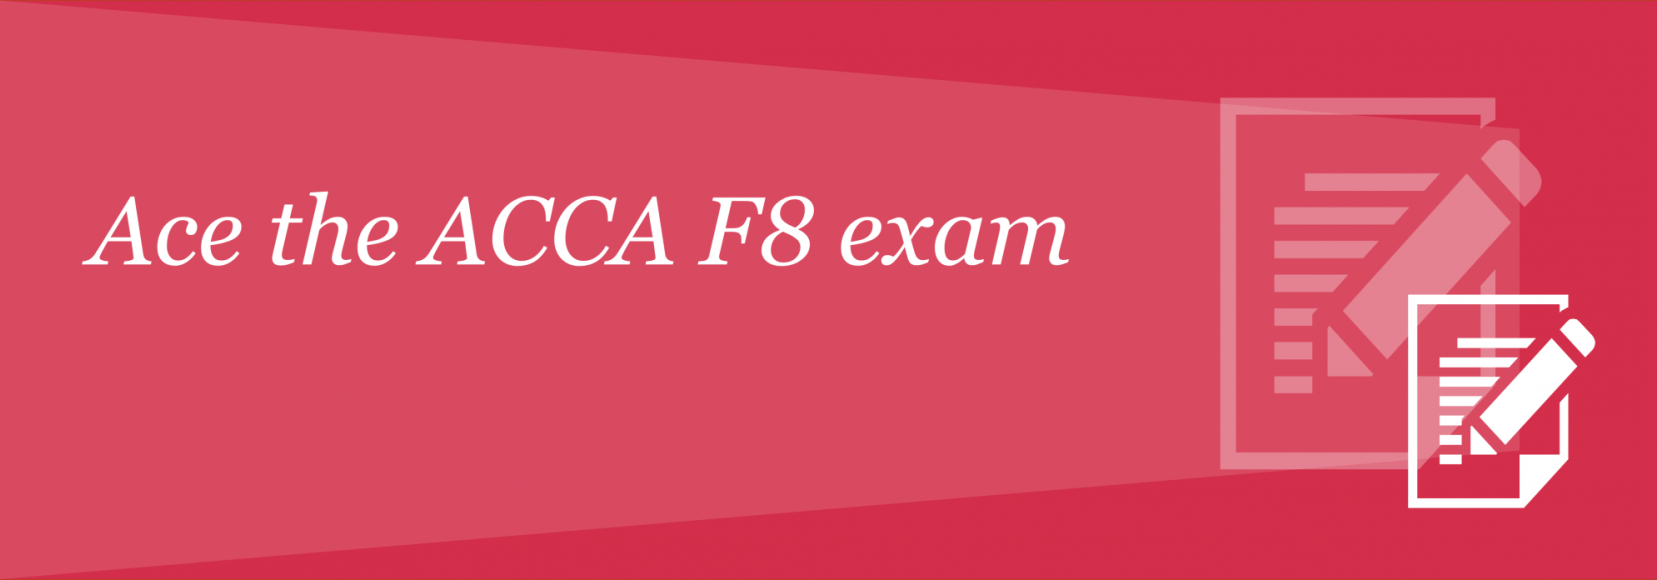 5 tips to ace the ACCA F8 exam | PwC's Academy Middle East